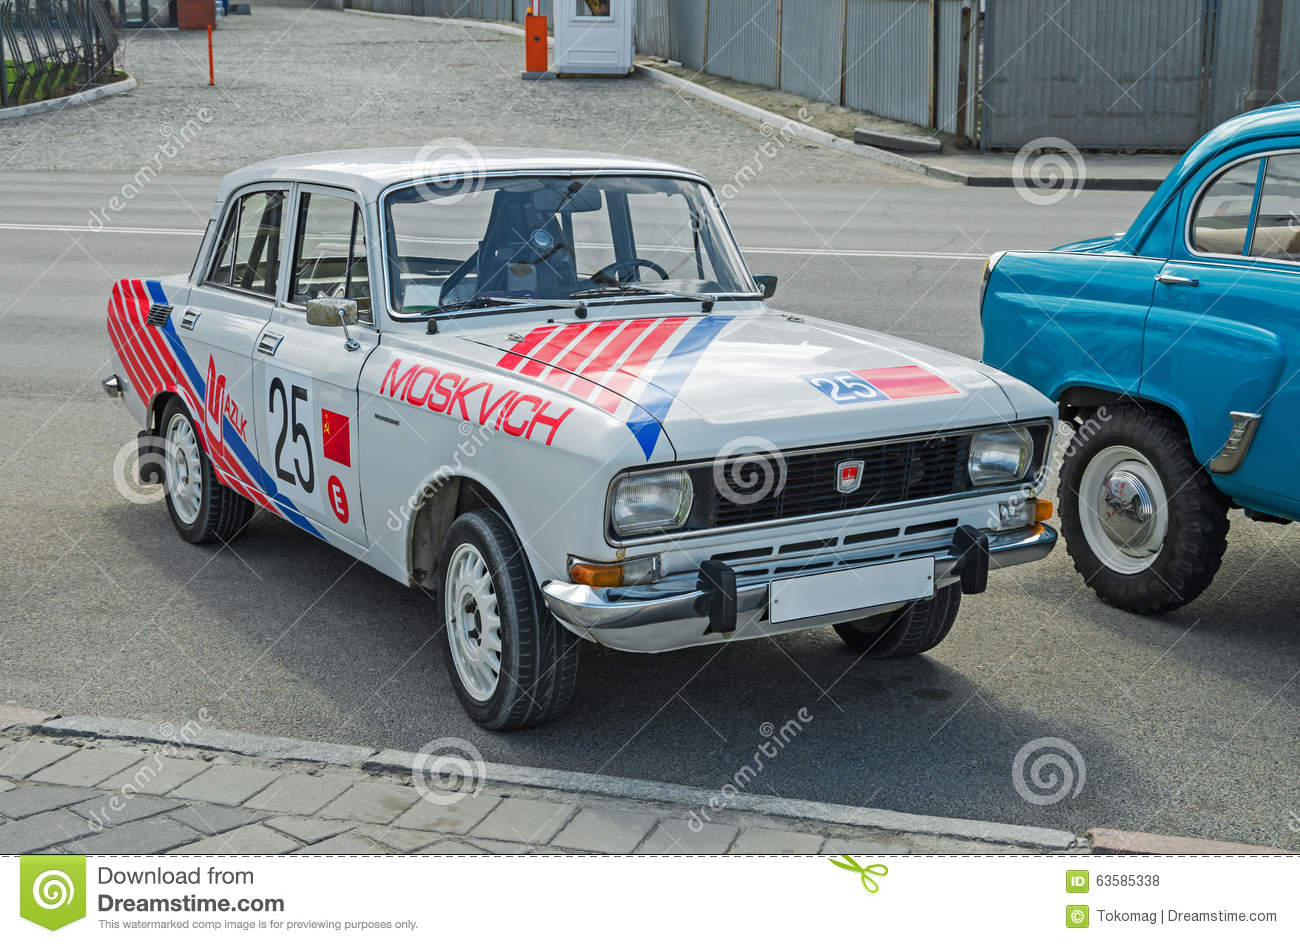 Old rally car editorial stock photo. Image of coupe, mobile - 63585338